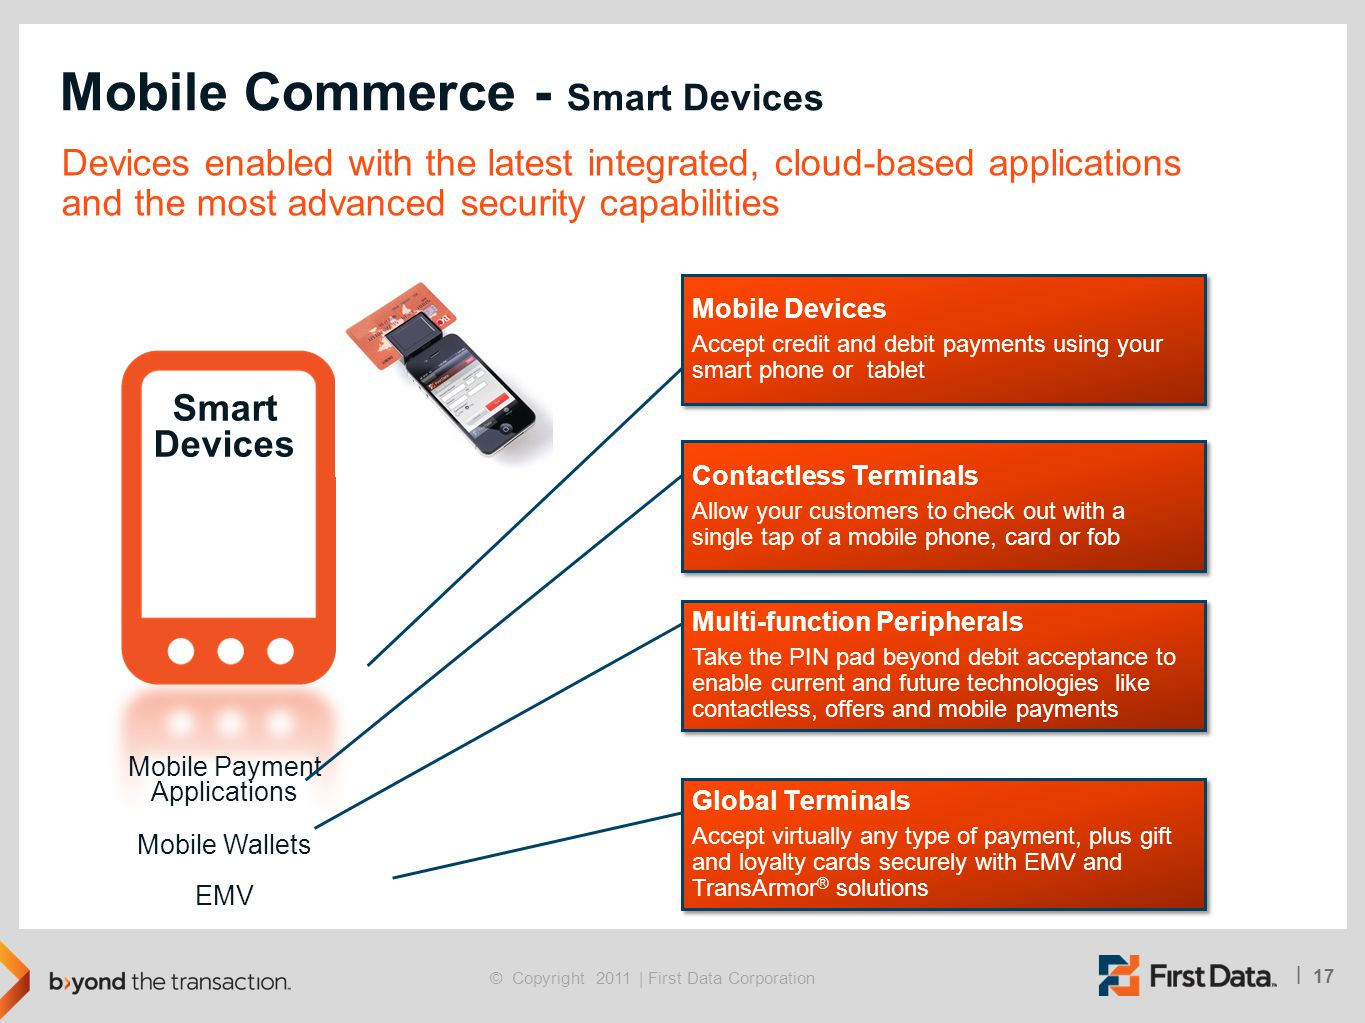 Mobile Commerce - Smart Devices